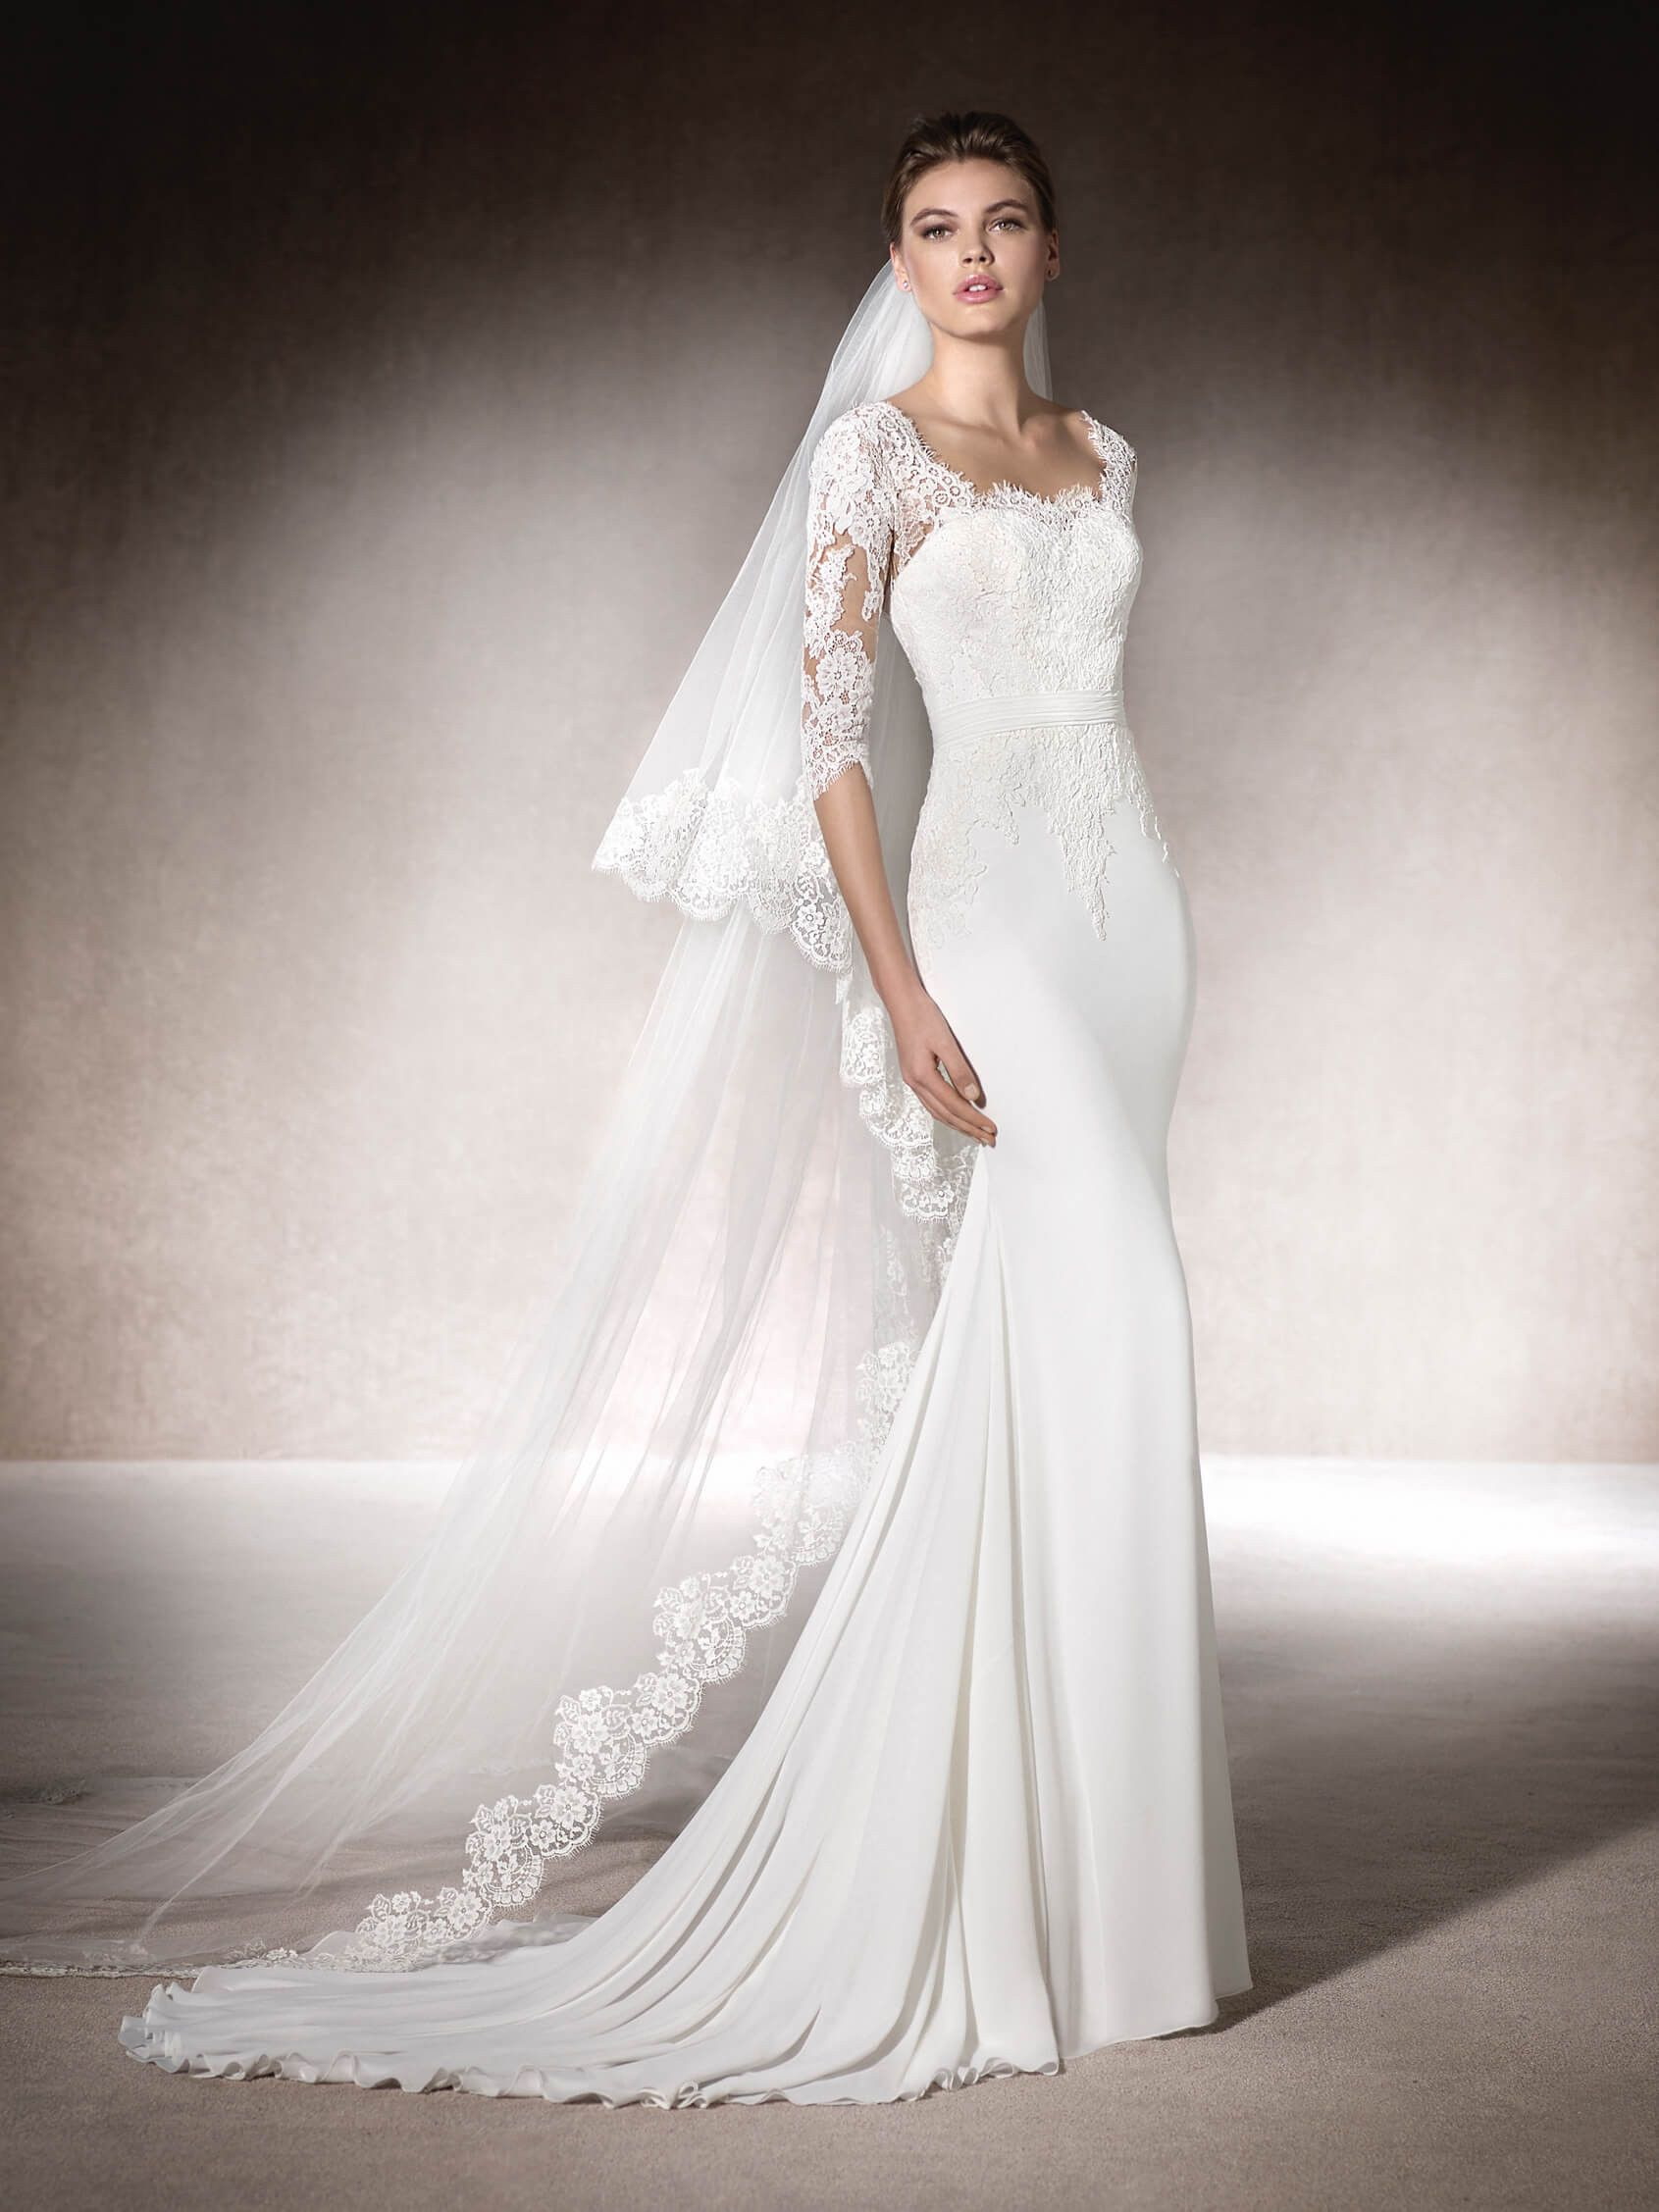 MINERVA is a beautiful mermaid wedding dress in gauze, lace and ...